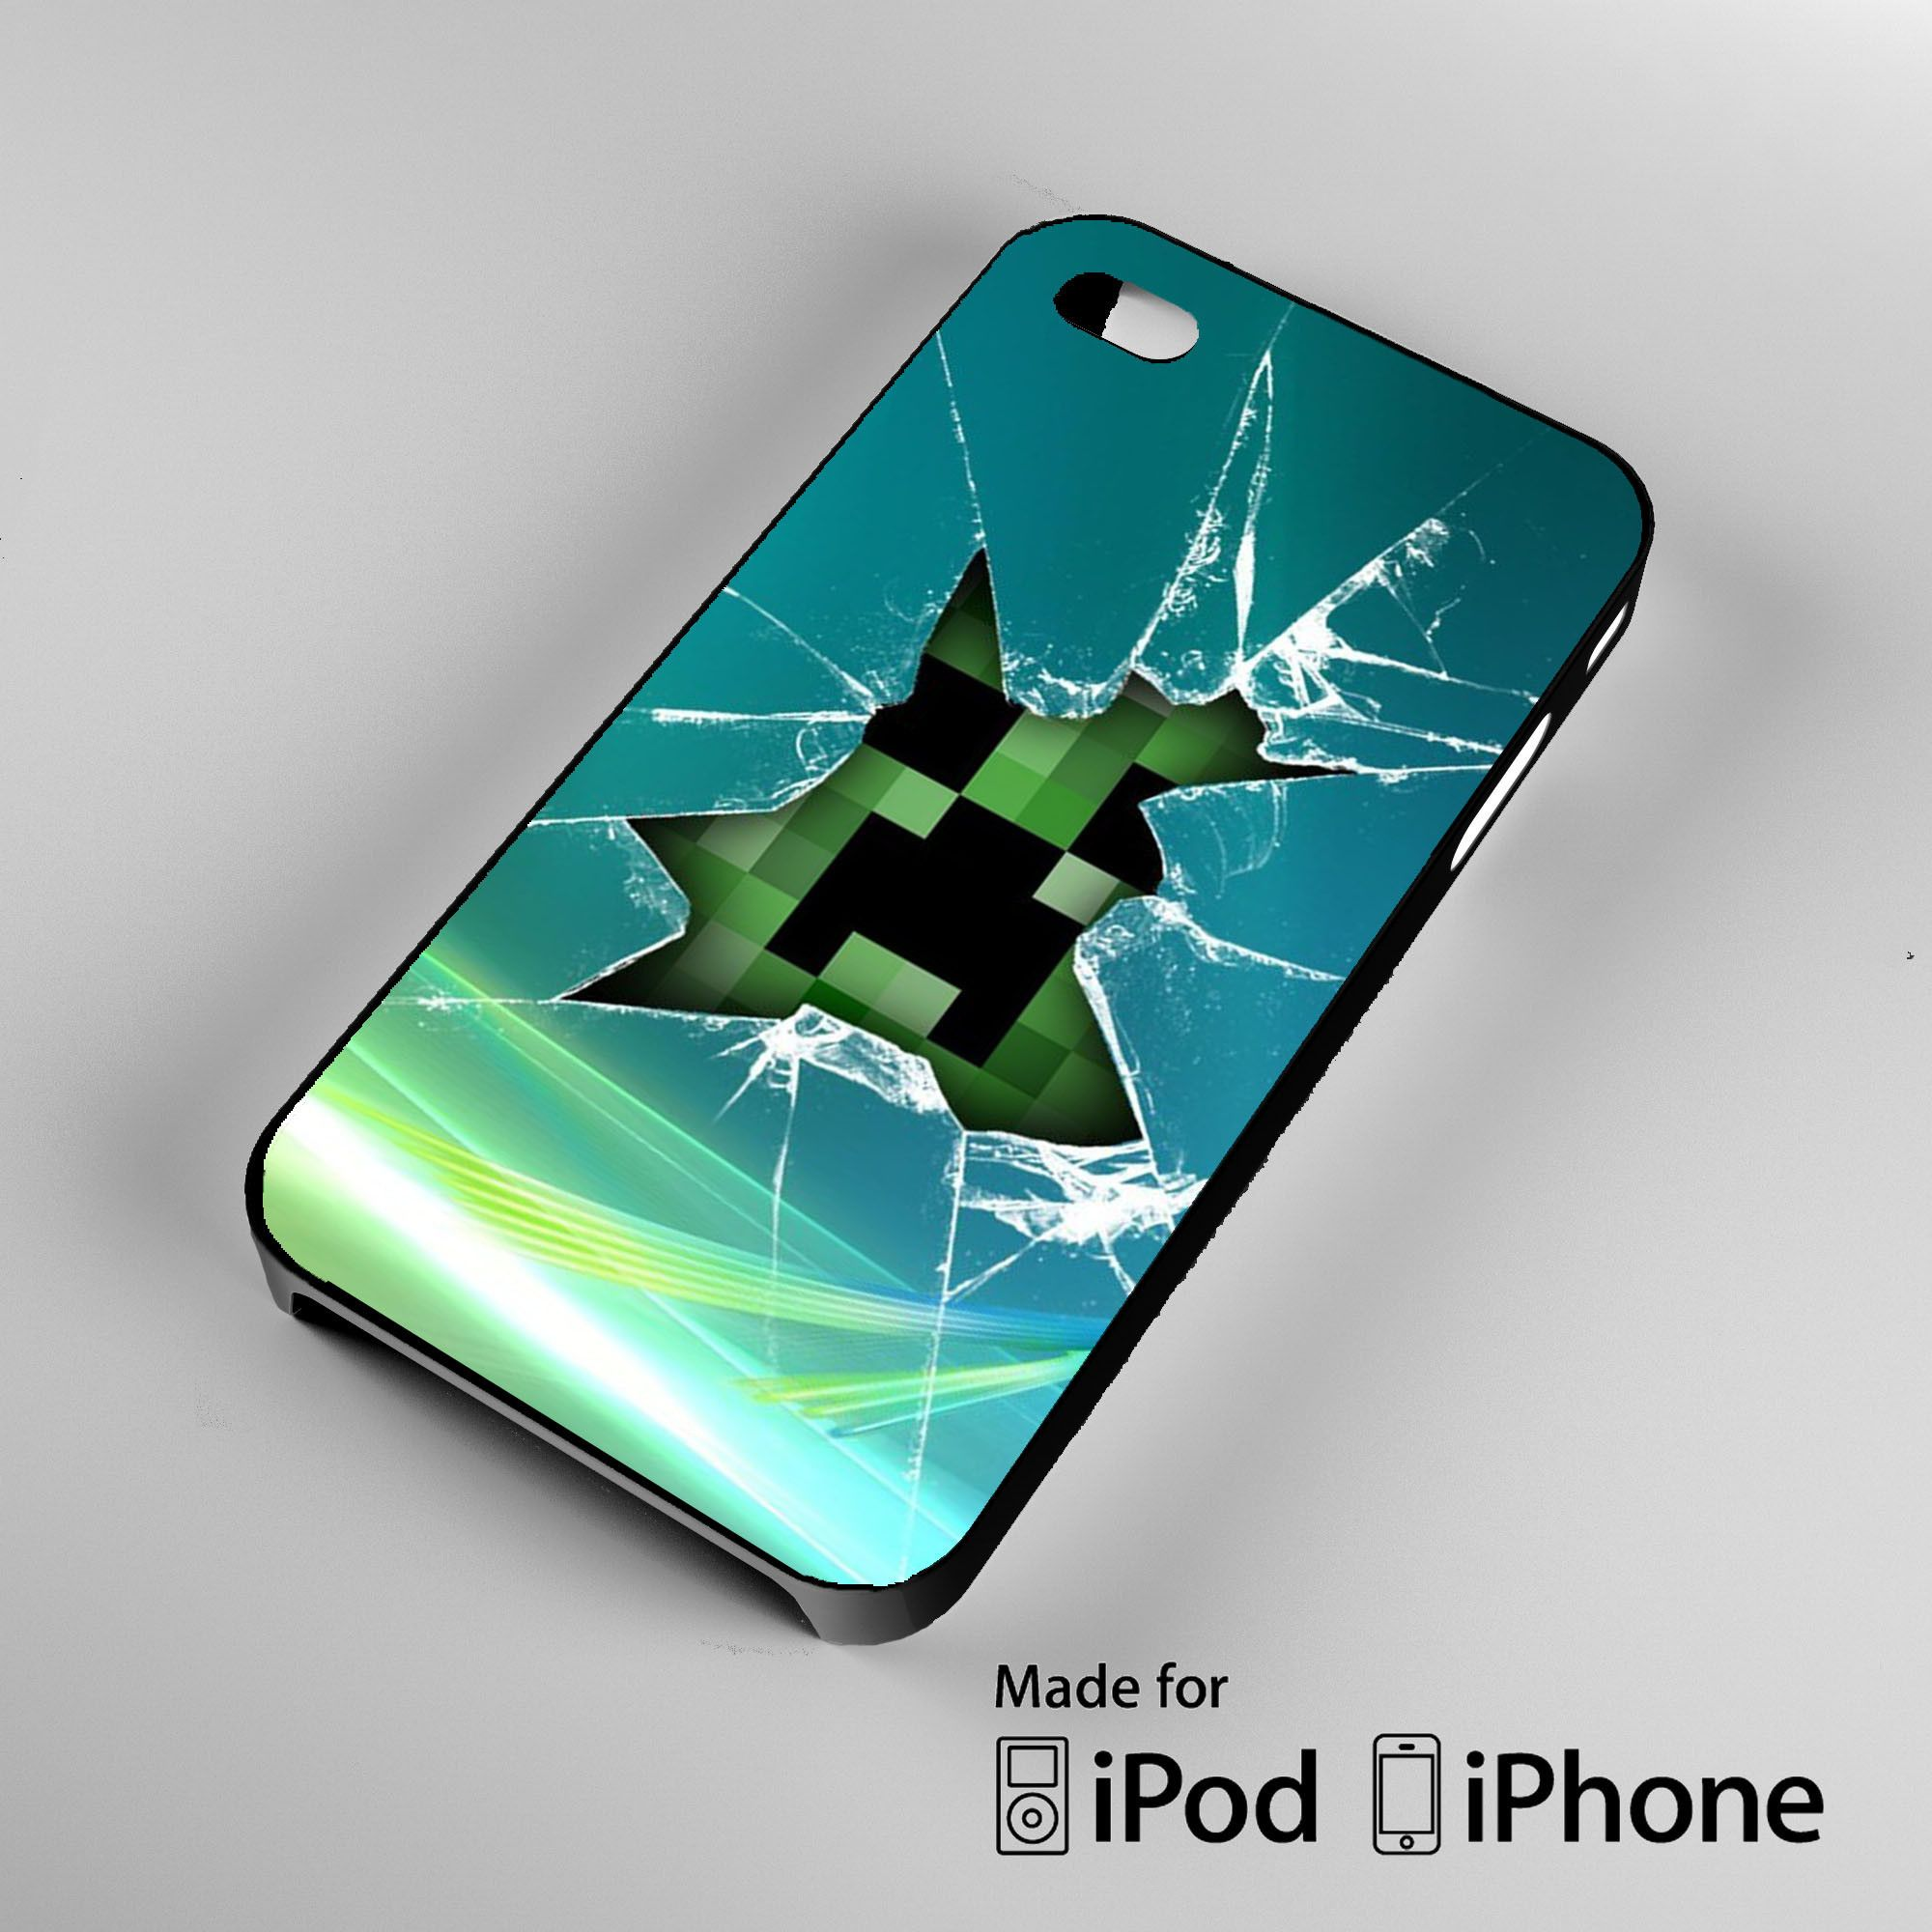 Minecraft Creeper Glass Broken A0100 iPhone 4S 5S 5C 6 6 Plus 6S 6S